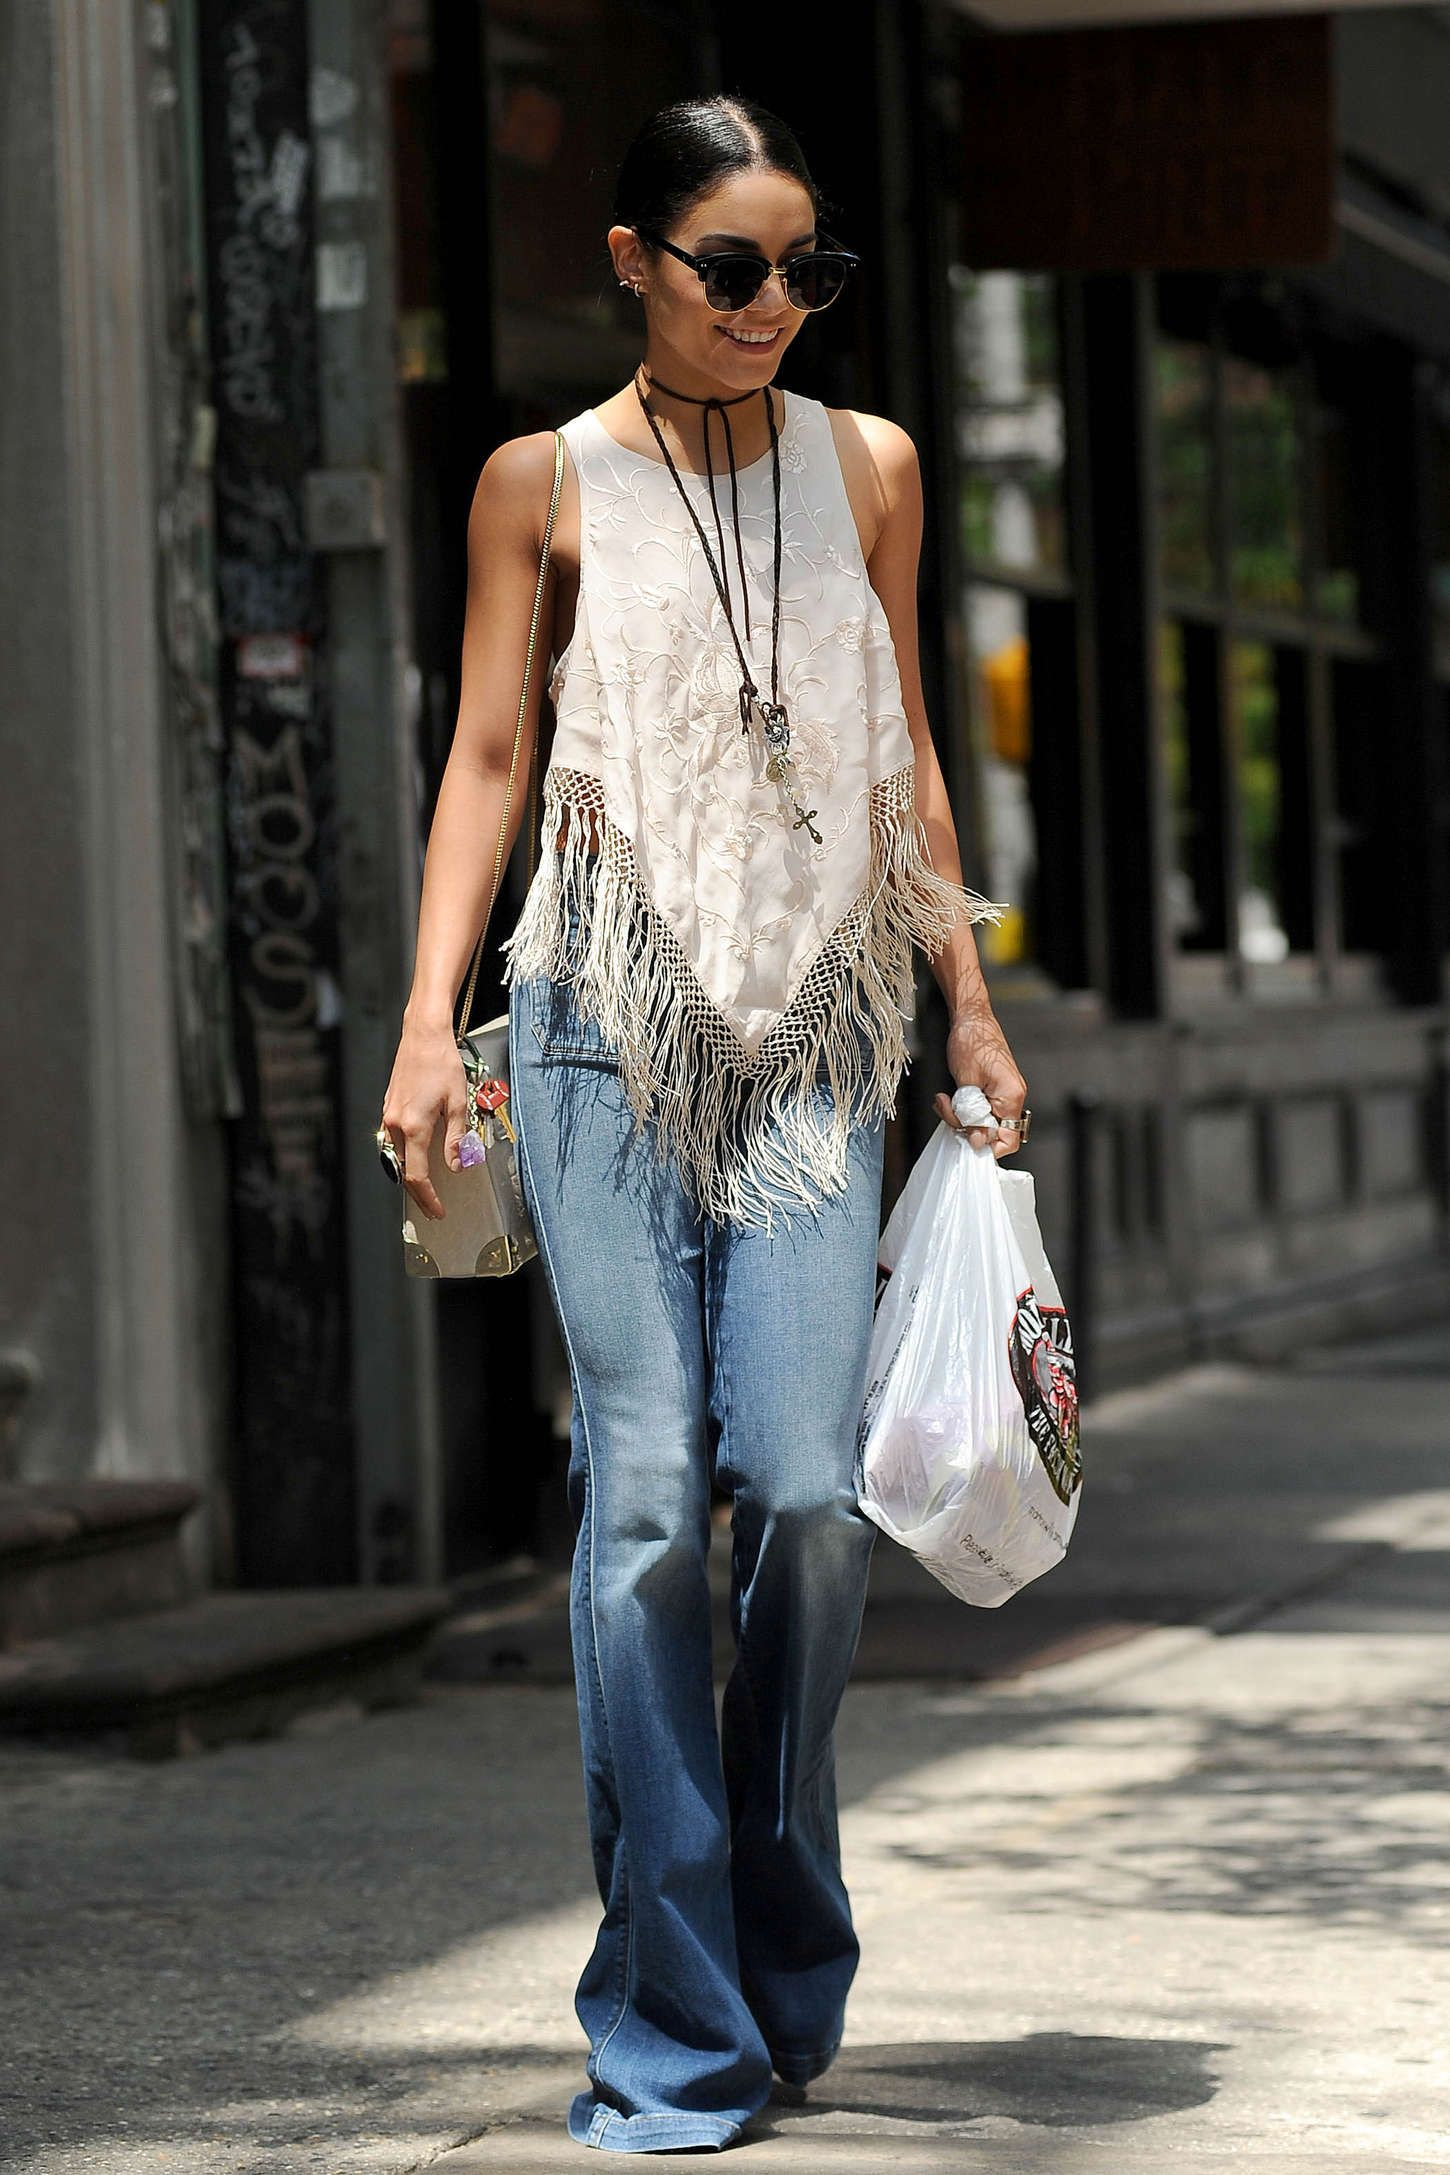 Vanessa Hudgens Out in Soho -04   Flare jeans style ...